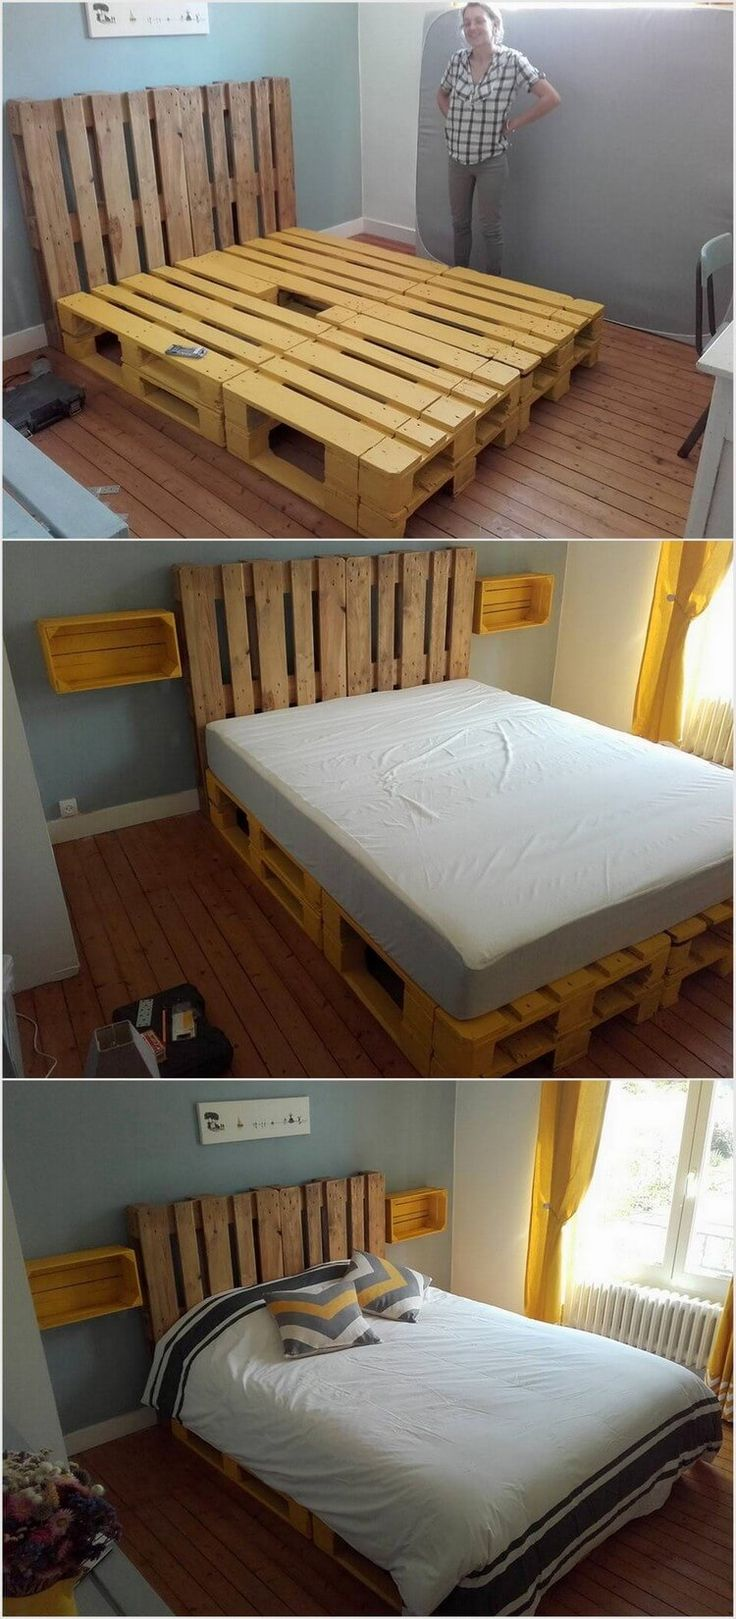 Wood pallet bed frame with lights the for Pallet bed frame with lights pinterest